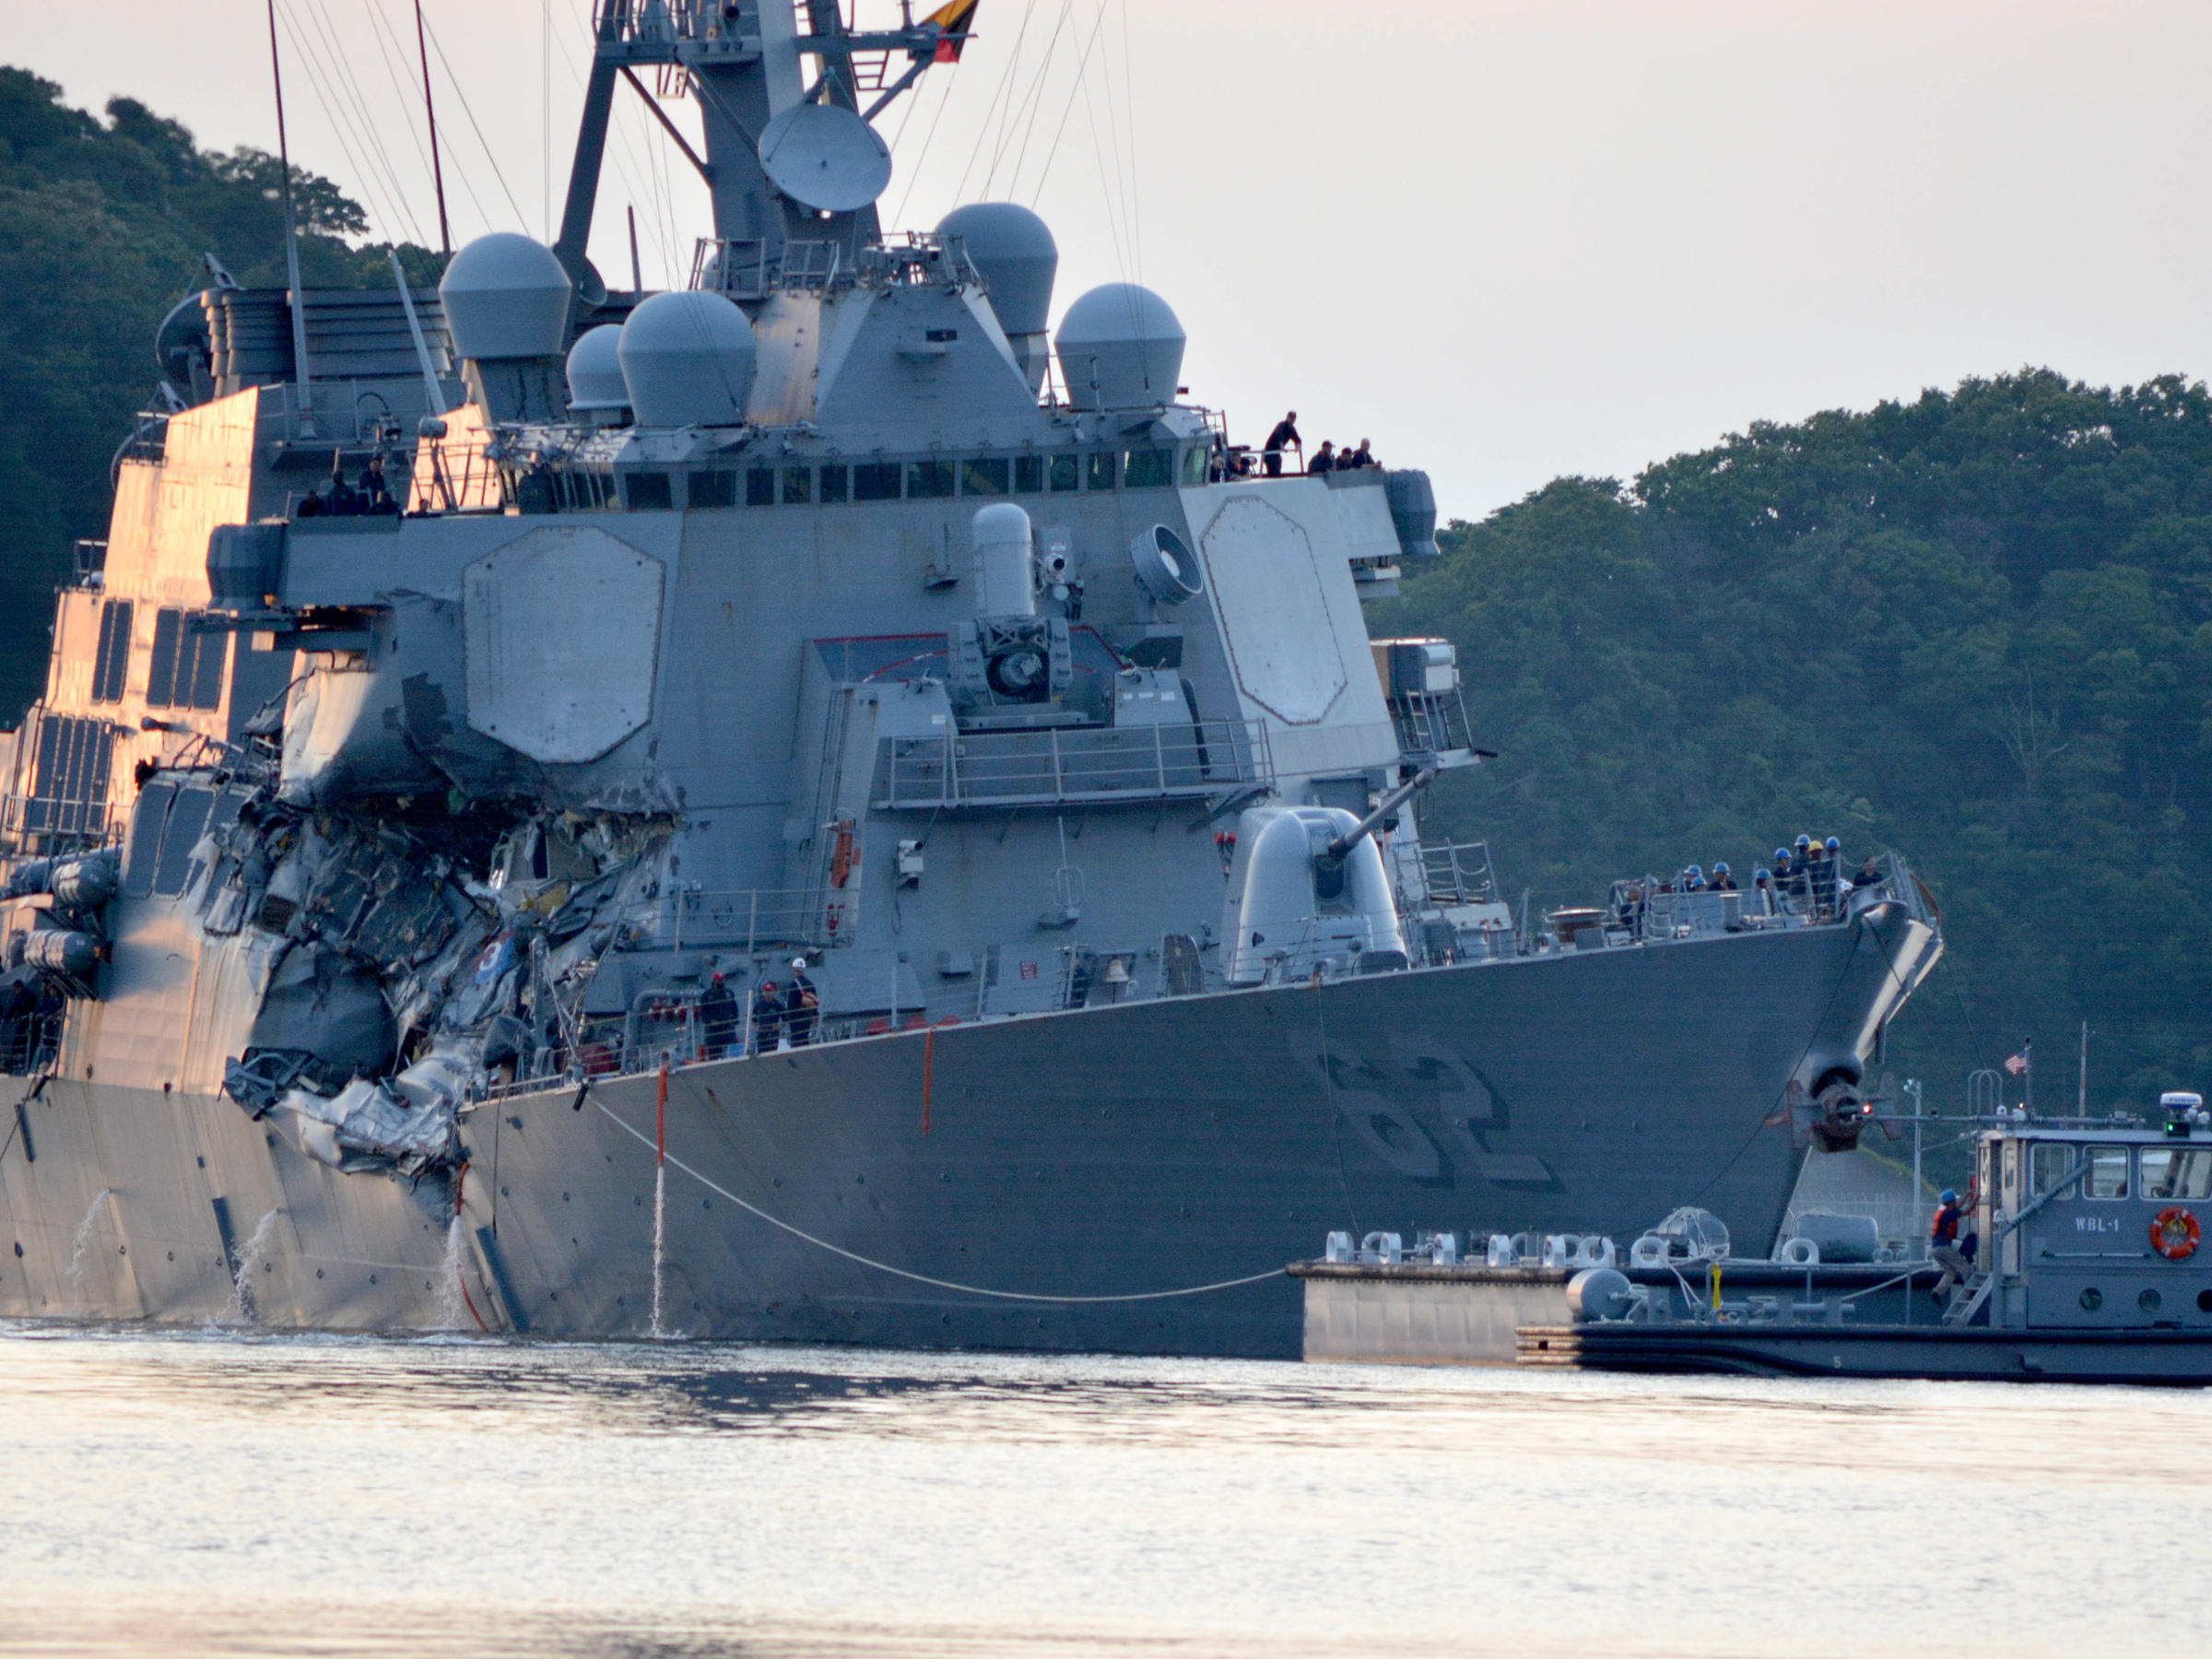 Unknown number of missing USS Fitzgerald sailors found dead